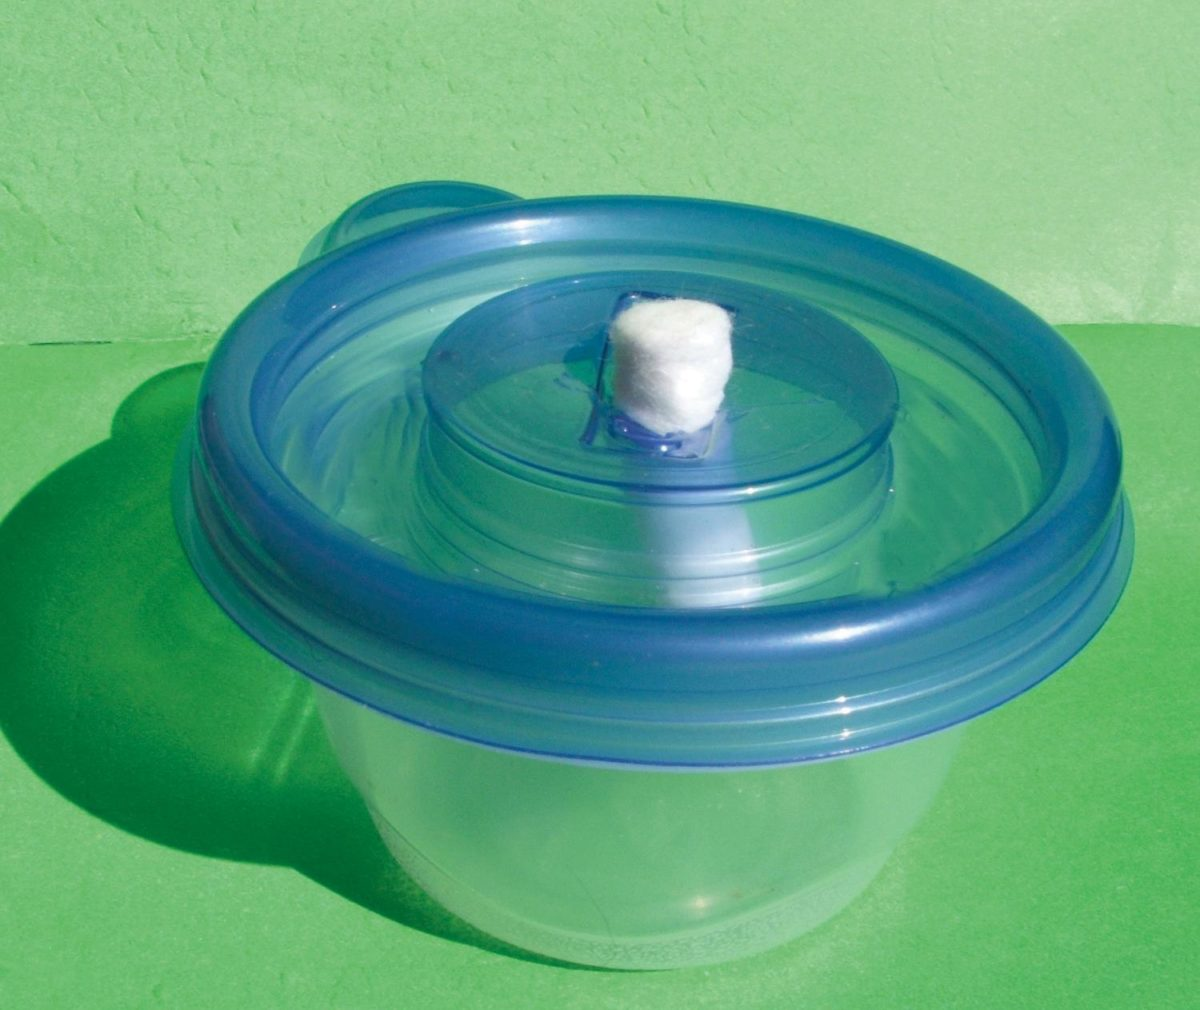 A simple nectar feeder consisting of a dental wick and plastic container.